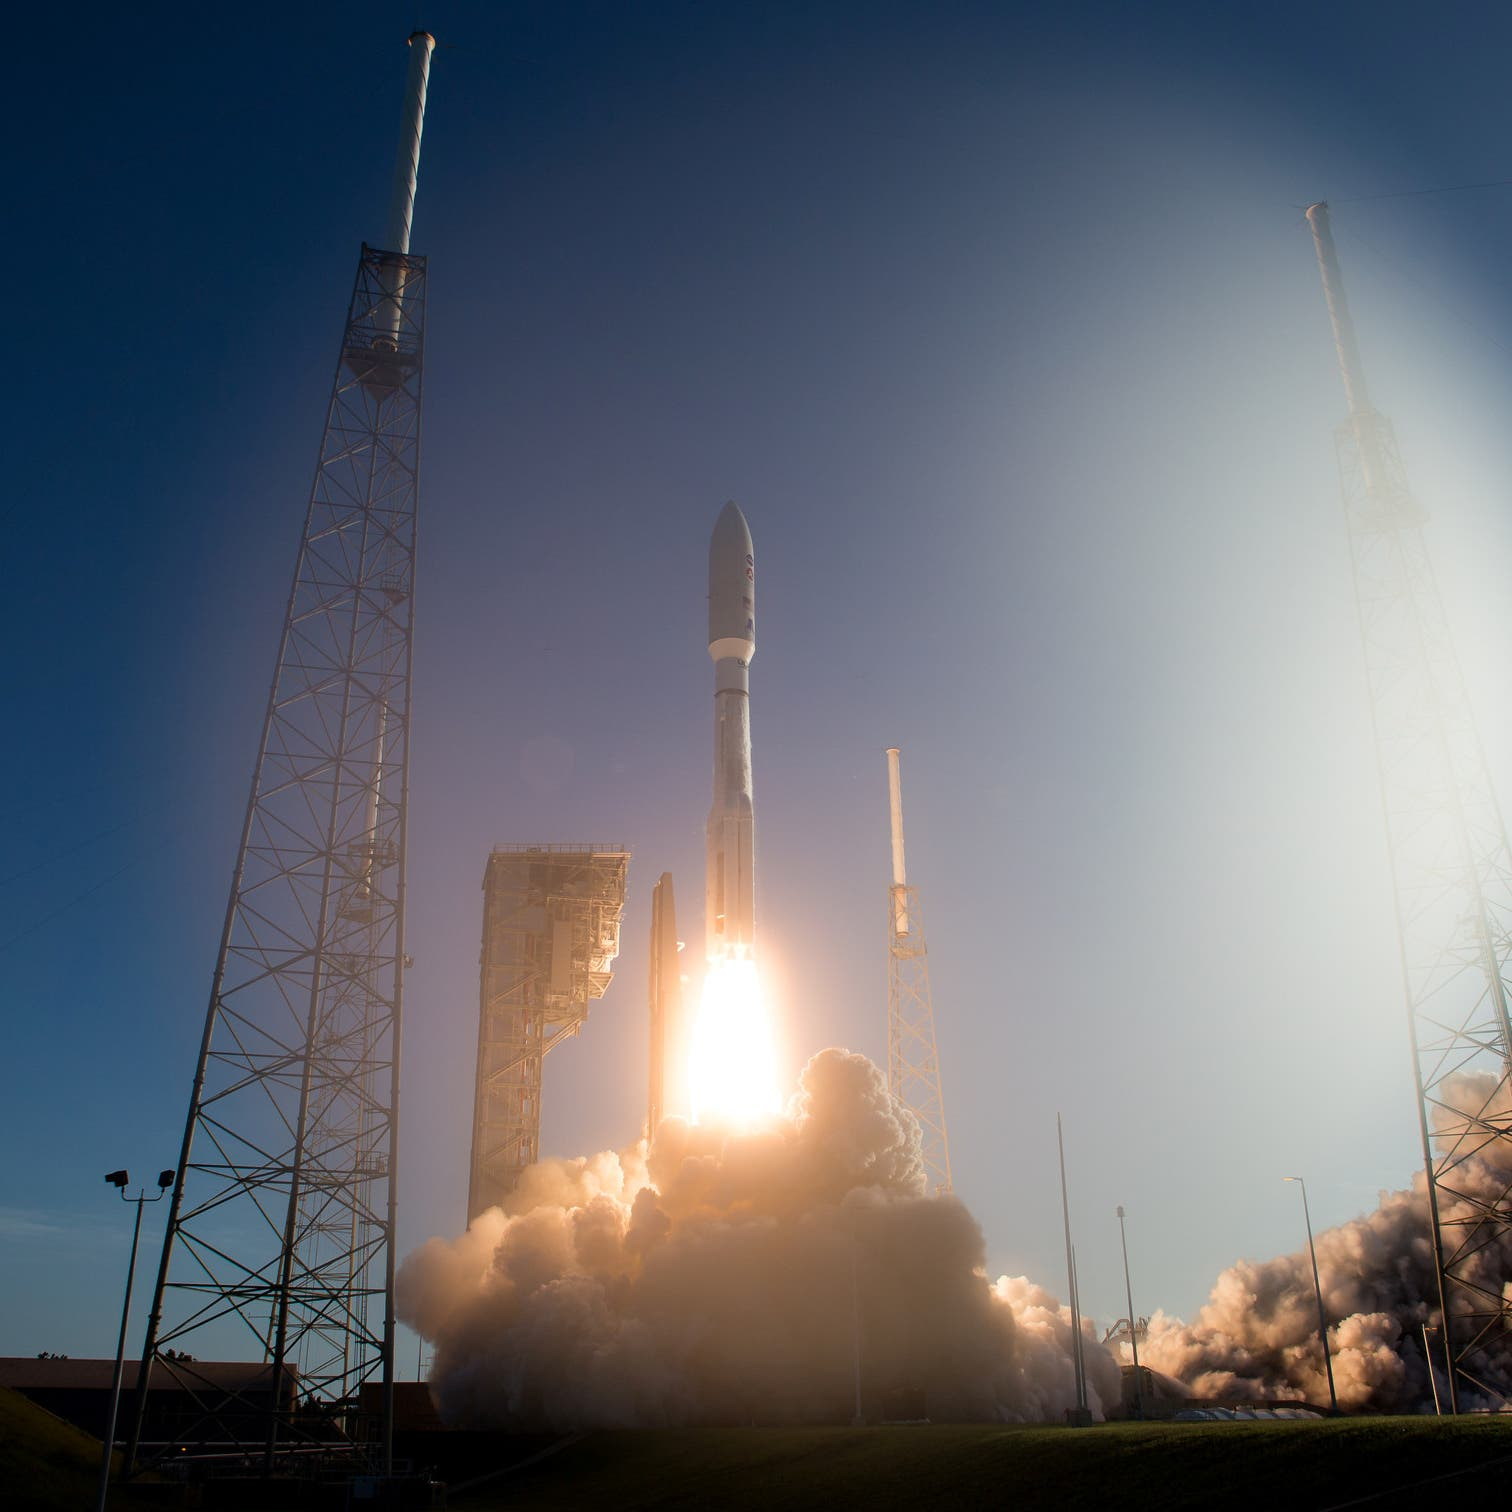 Saudi Arabia to invest $2.1 bln for space program by 2030